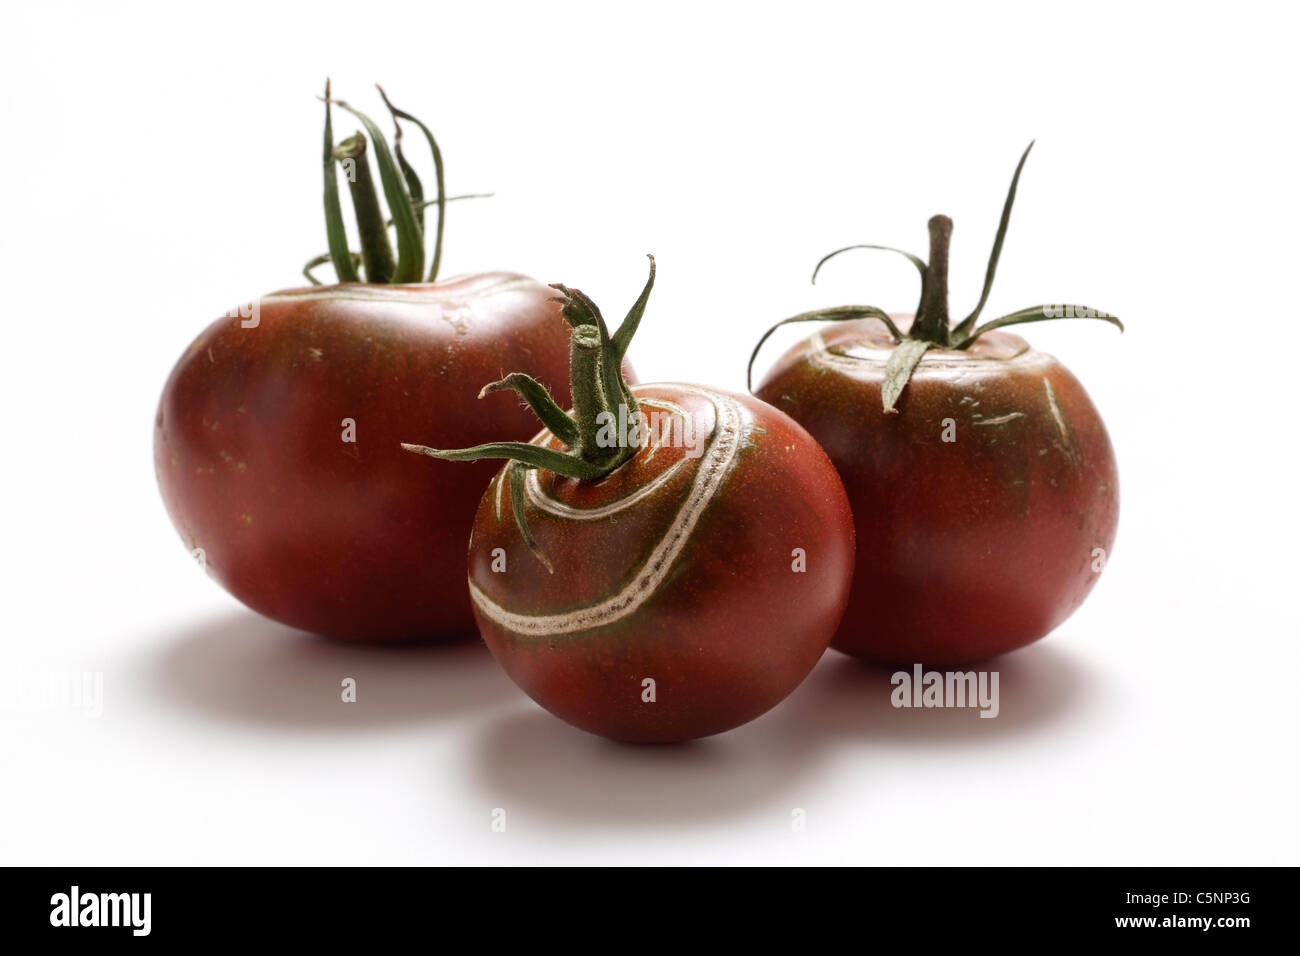 Tomato varieties: Black from Russia - Stock Image